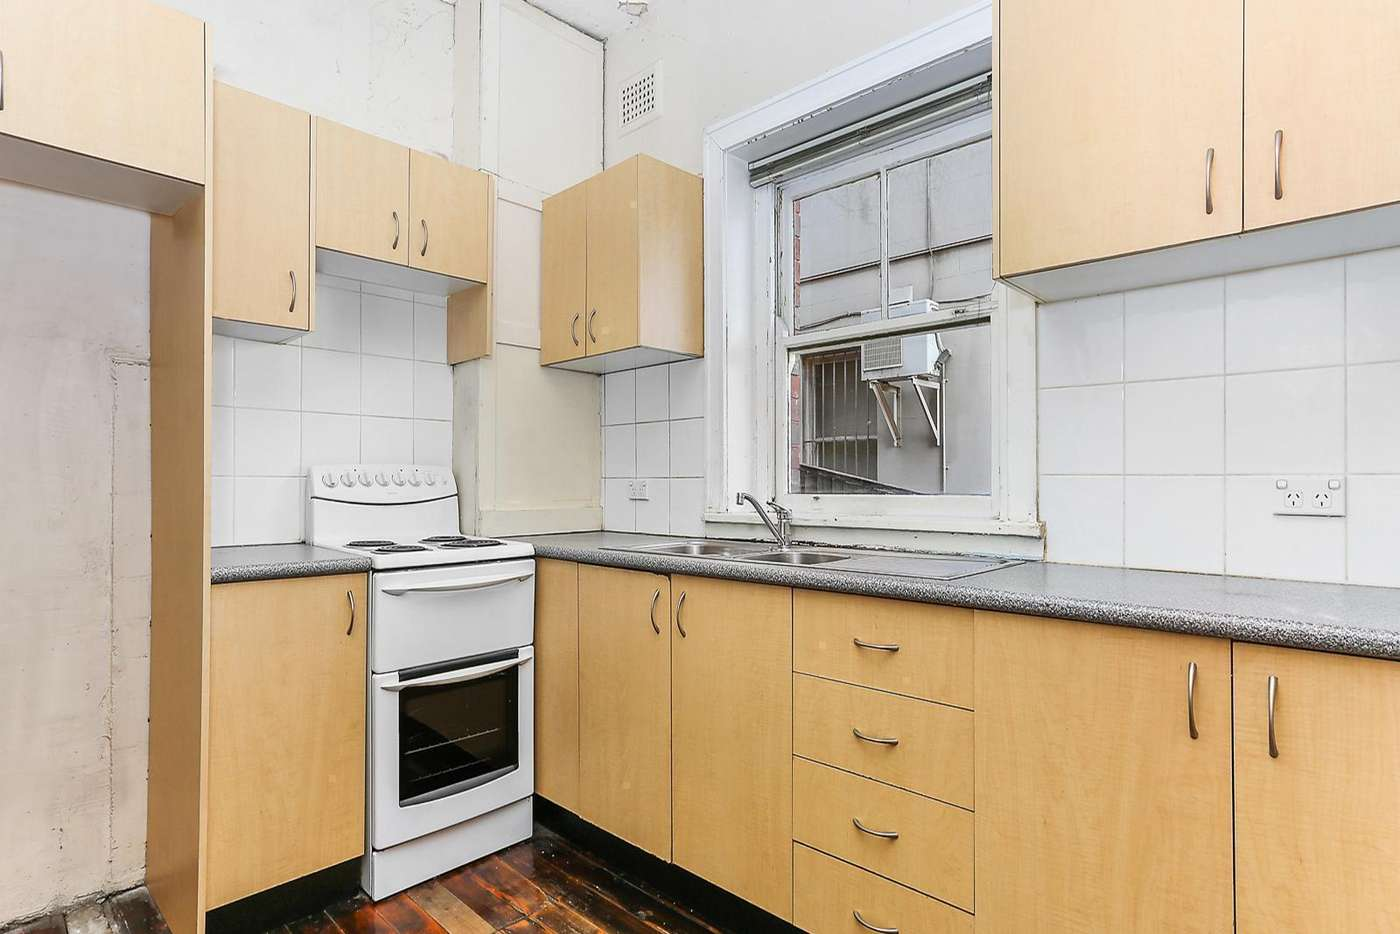 Main view of Homely unit listing, 3/186 Anzac Parade, Kensington NSW 2033